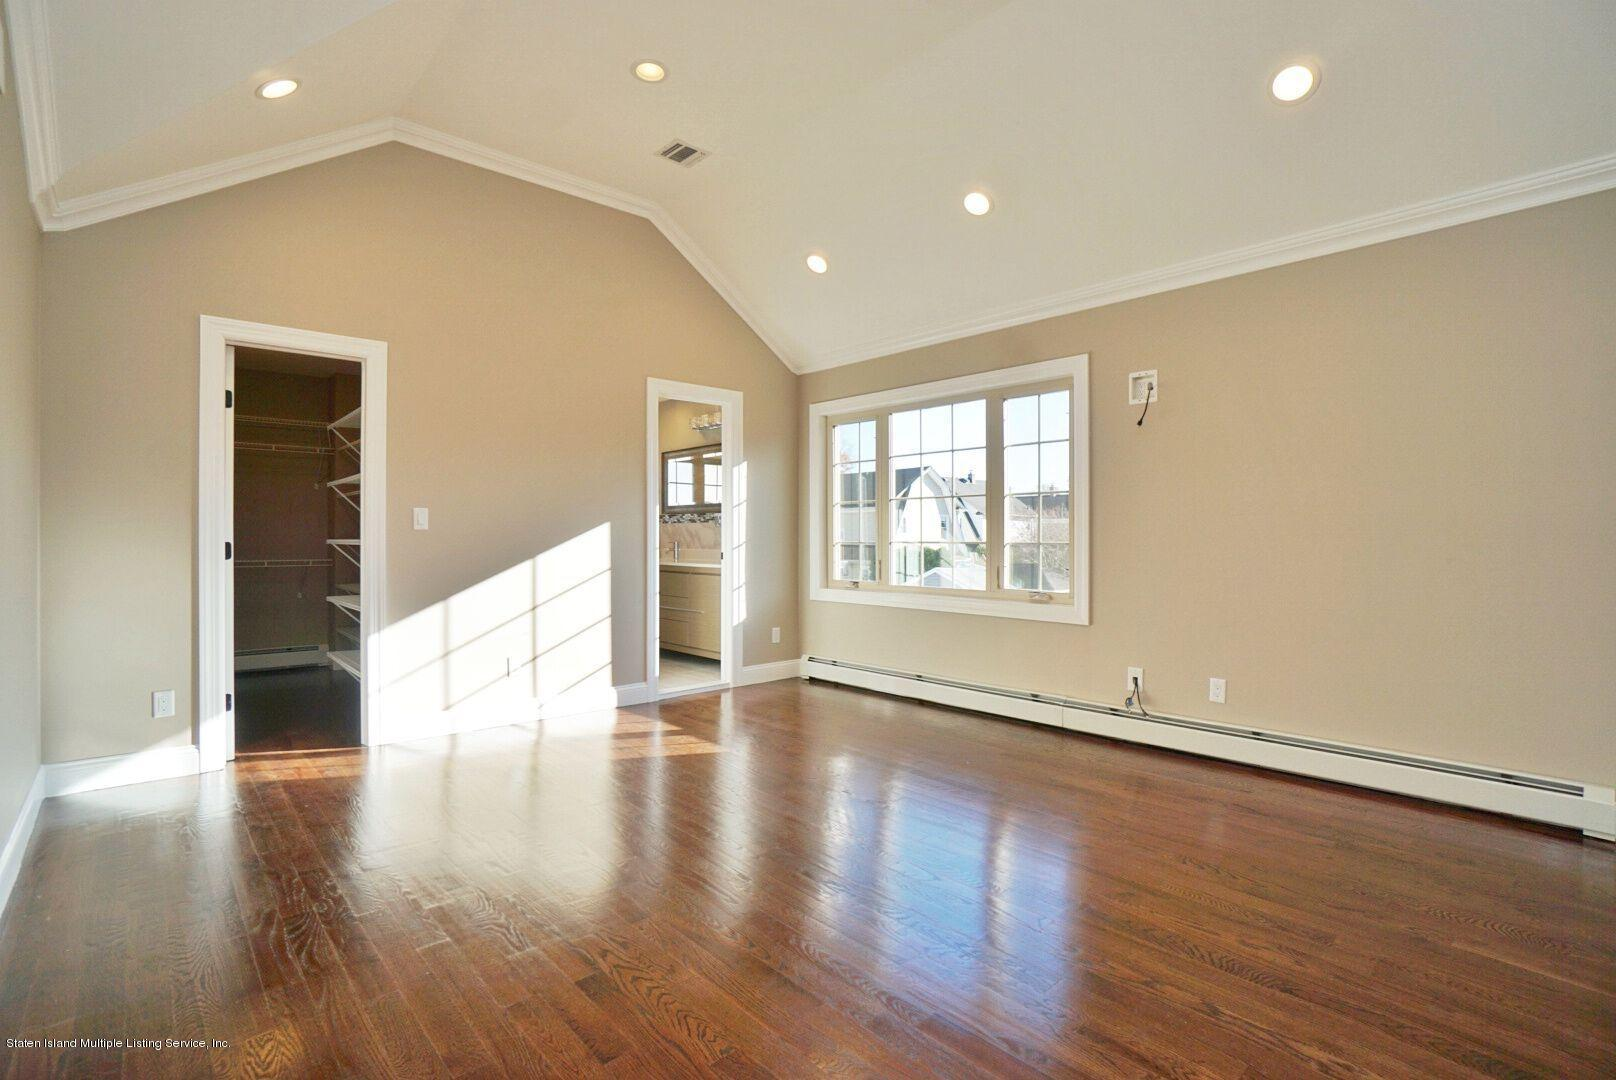 Single Family - Detached 165 Woolley Avenue  Staten Island, NY 10314, MLS-1128875-46